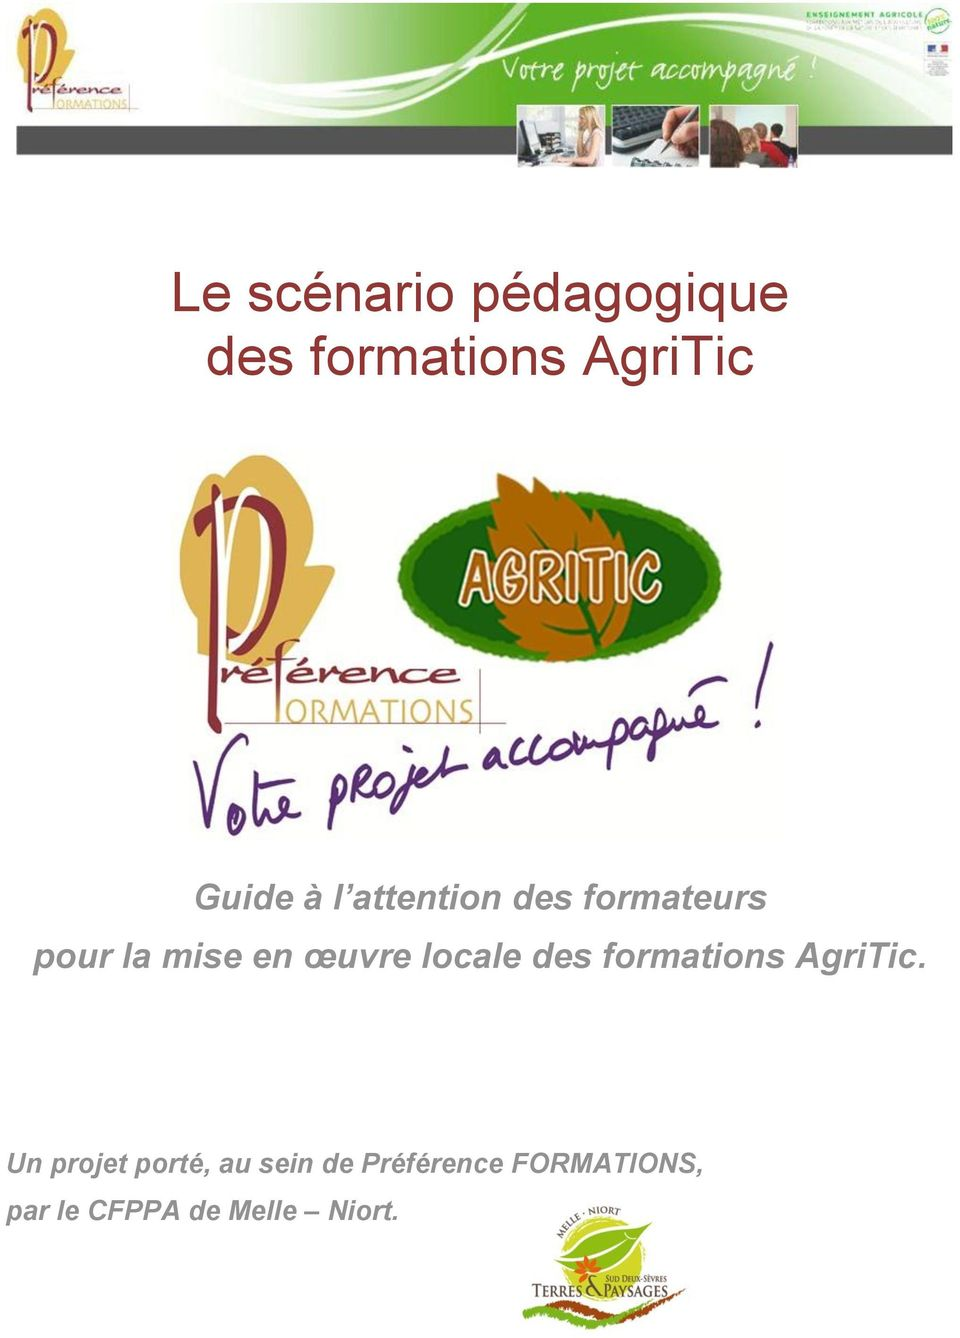 locale des s AgriTic.